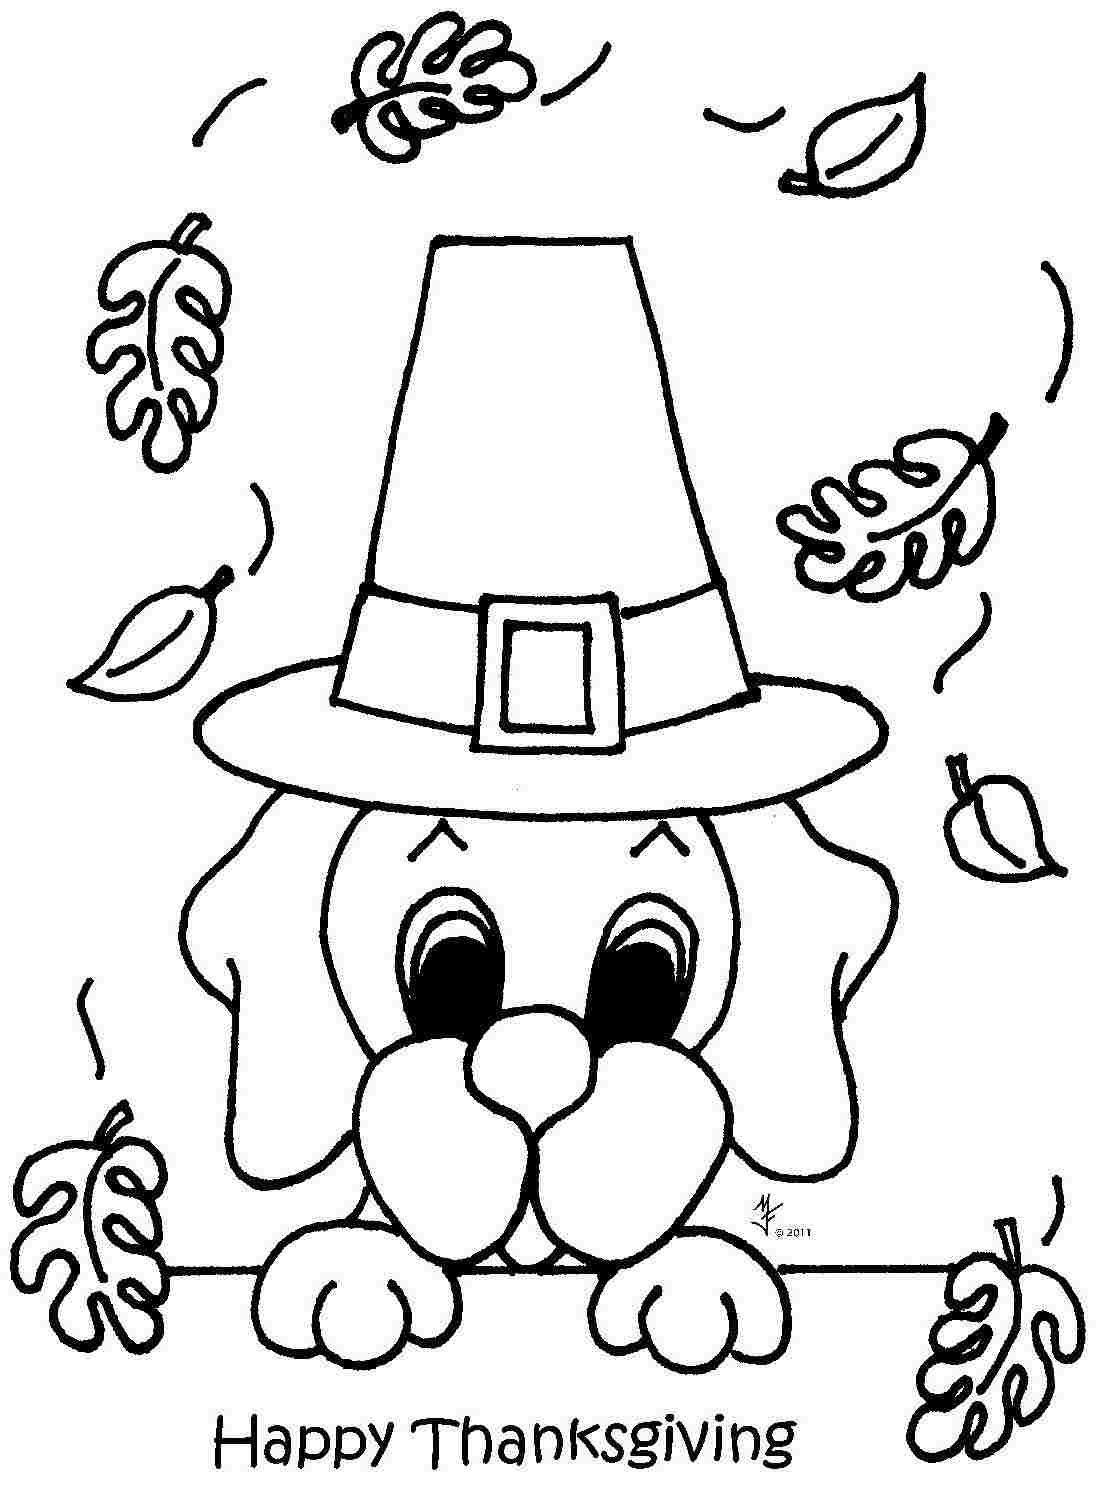 Impressive Design Thanksgiving Coloring Pages Happy Thanksgiving Gallery Of Back to School Coloring Pages for Kindergarten 1480—2168 Printable